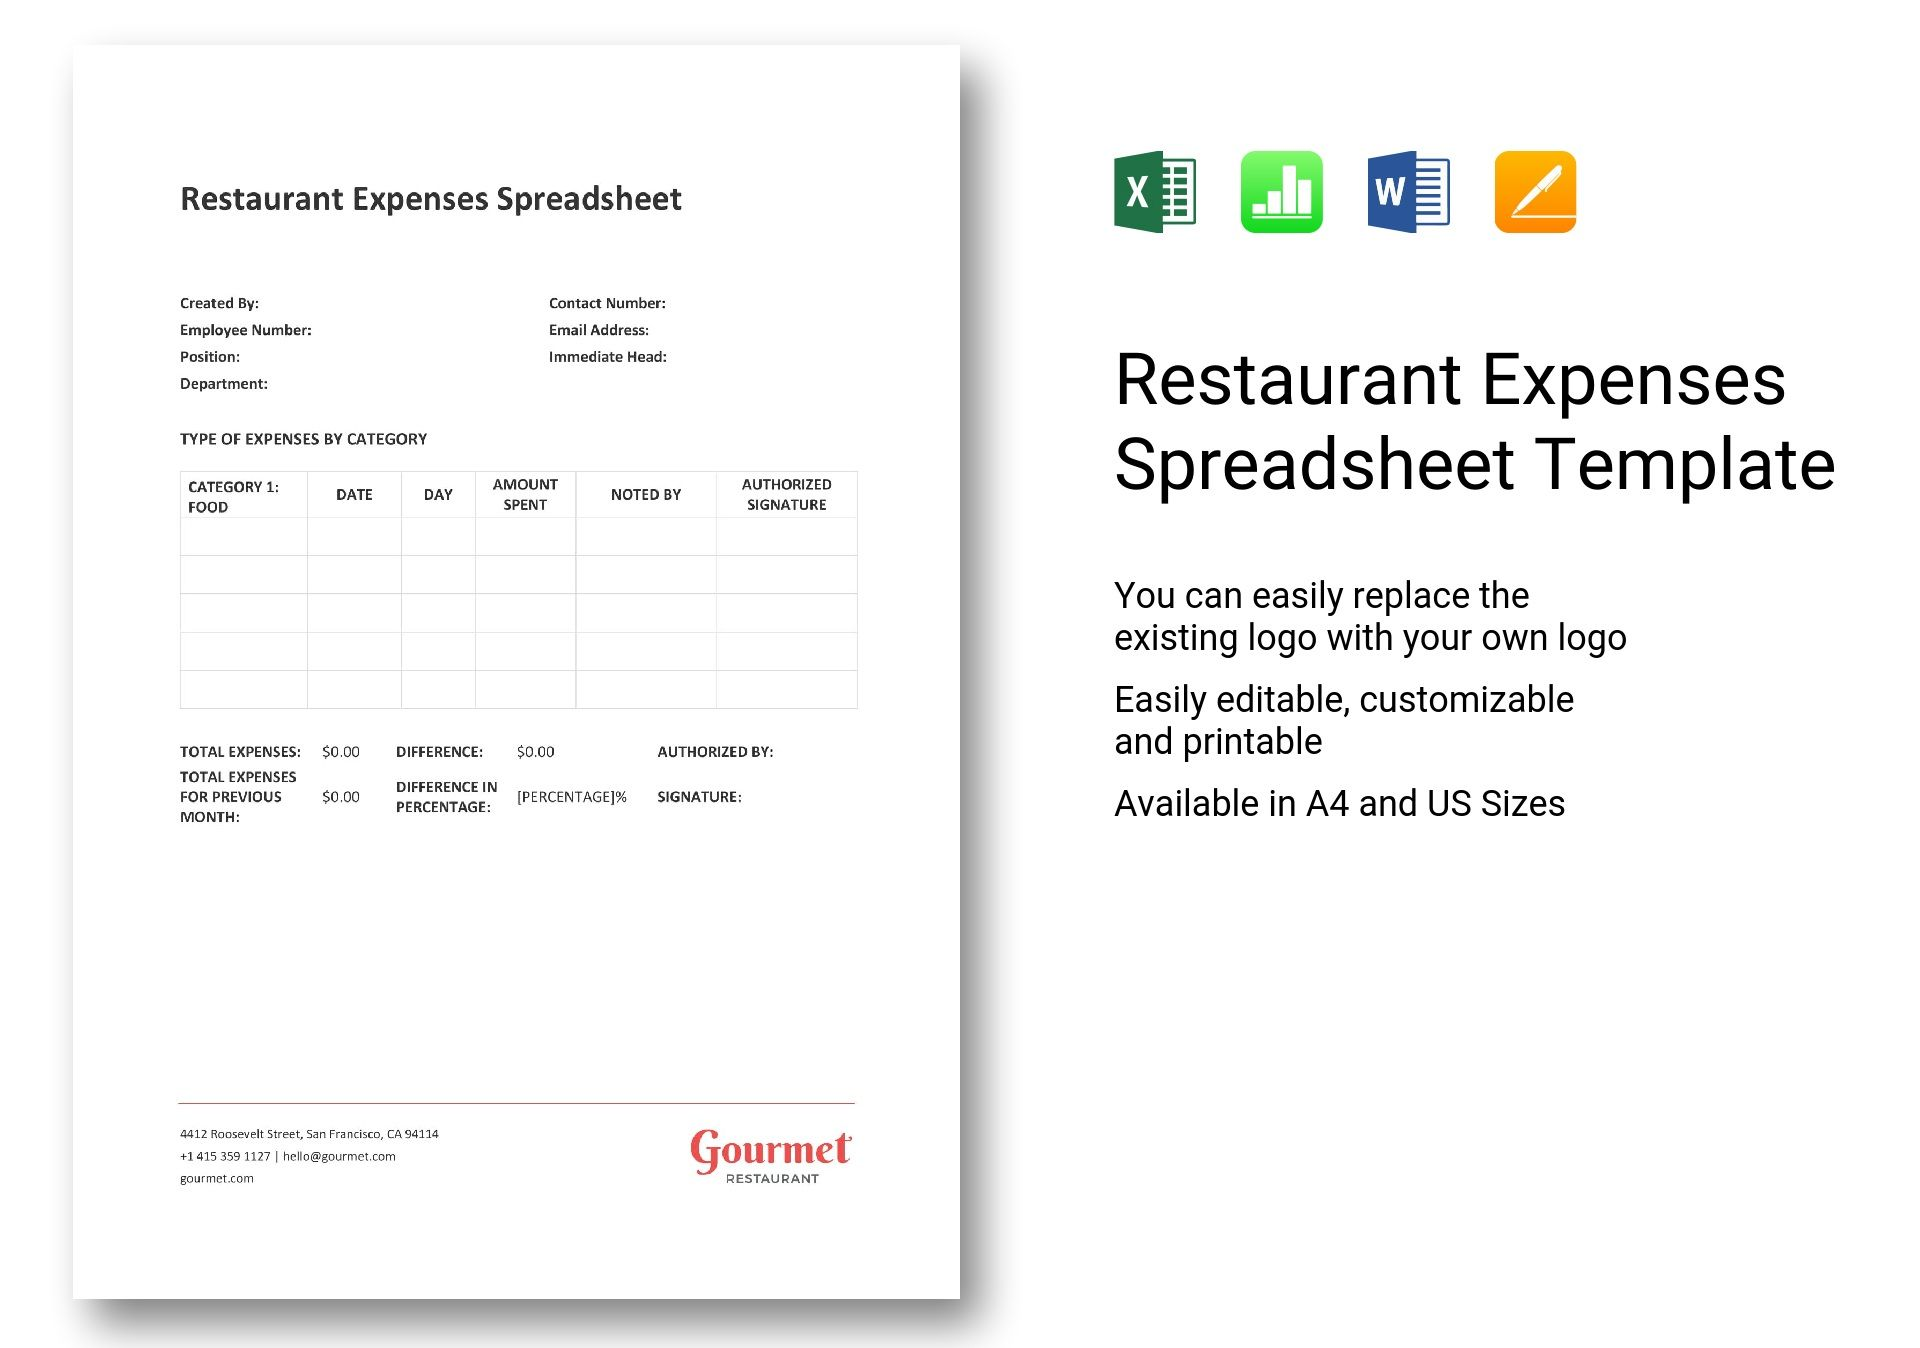 Restaurant Expenses Spreadsheet Template In Word Excel